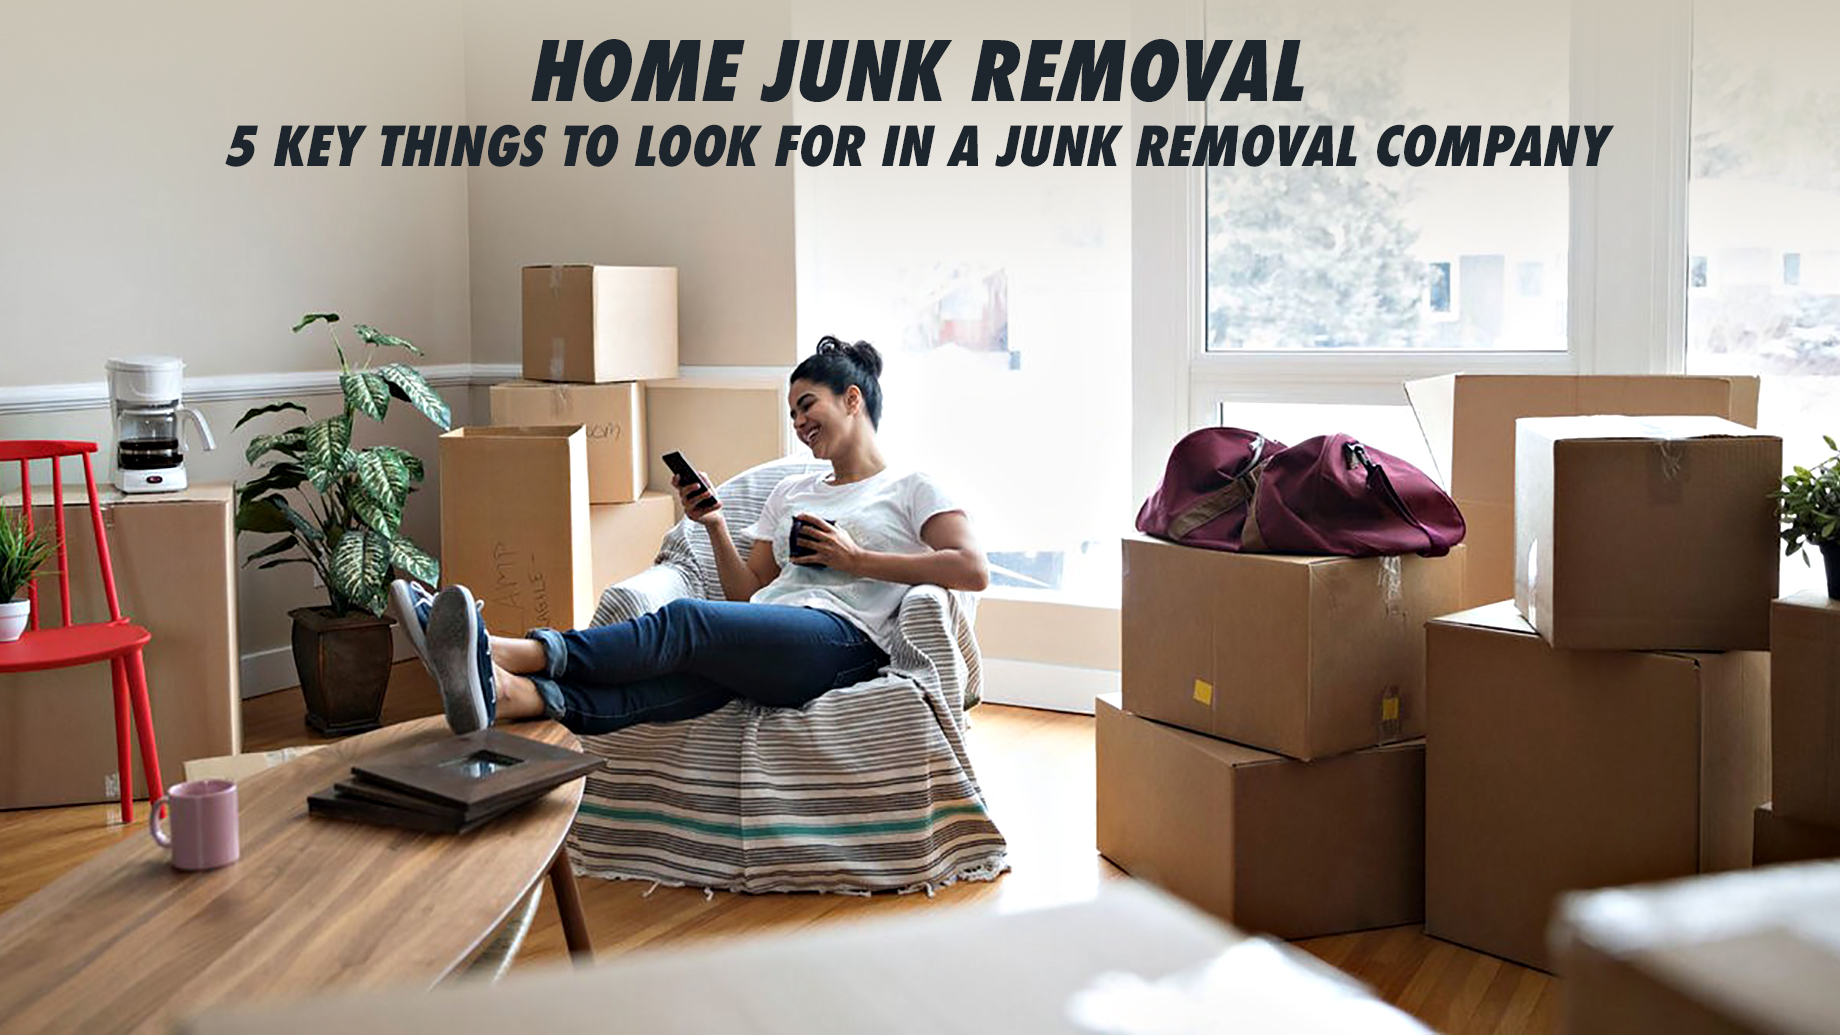 Home Junk Removal - 5 Key Things To Look For In A Junk Removal Company